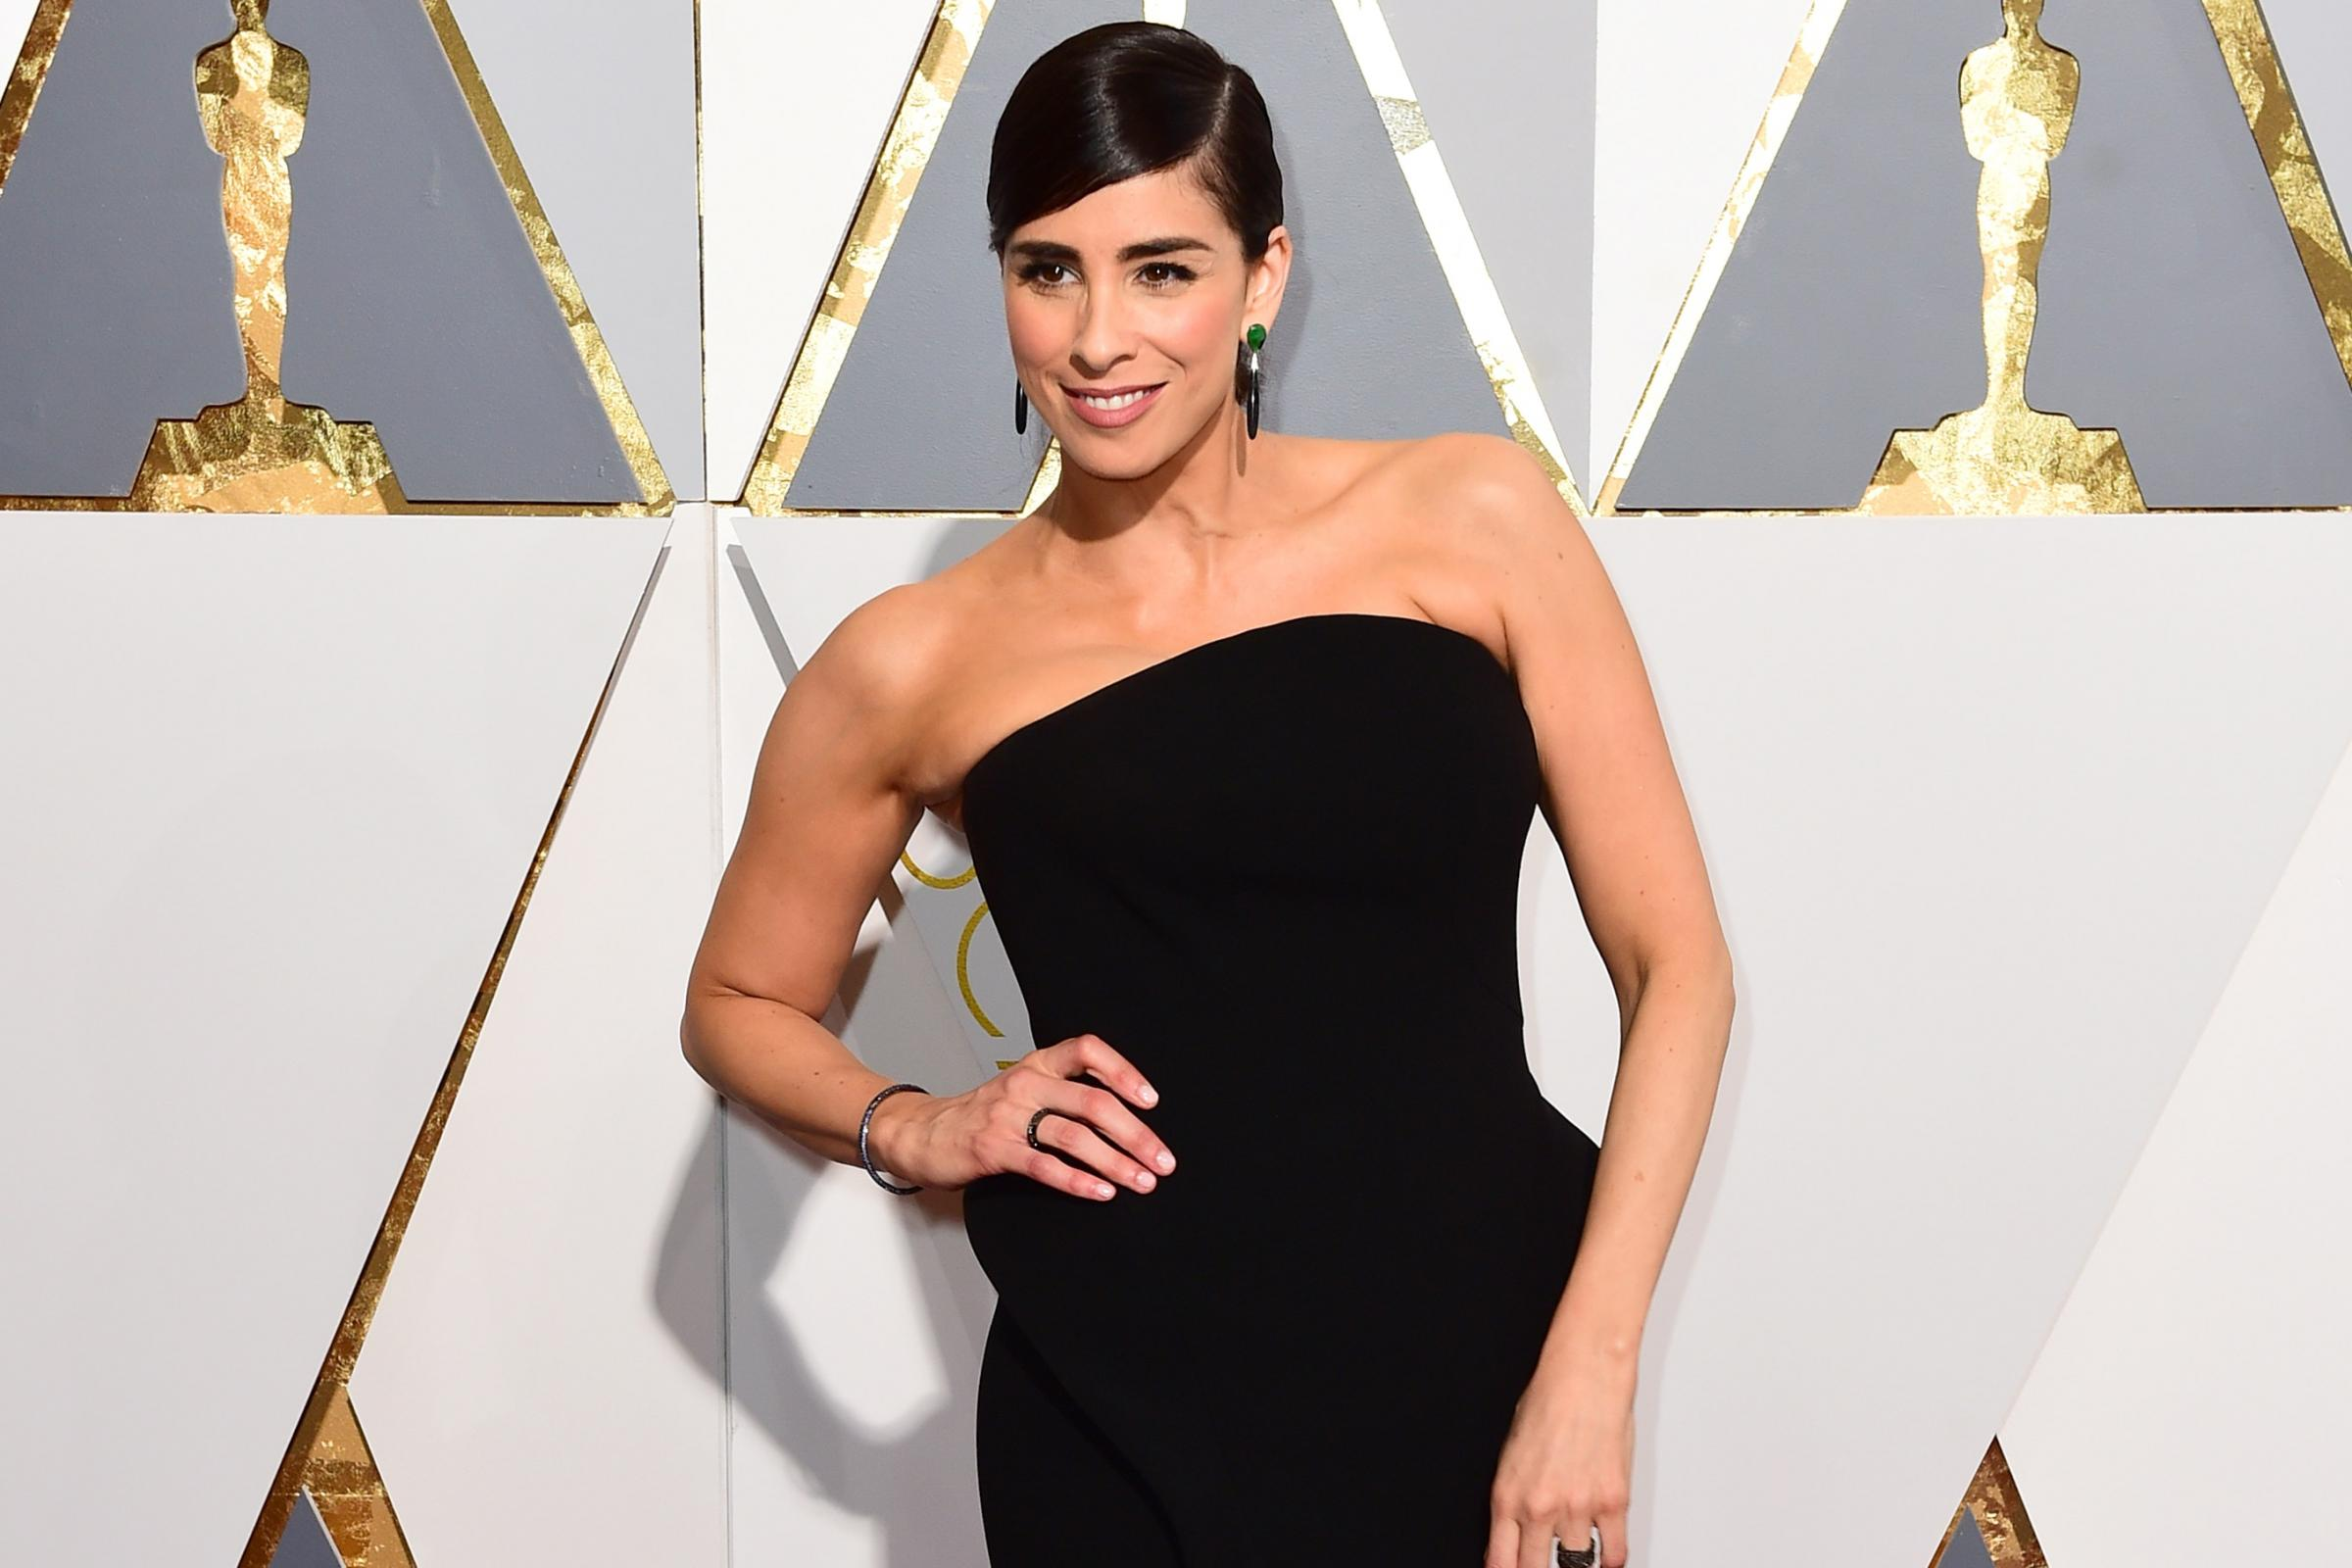 Sarah Silverman on the red carpet